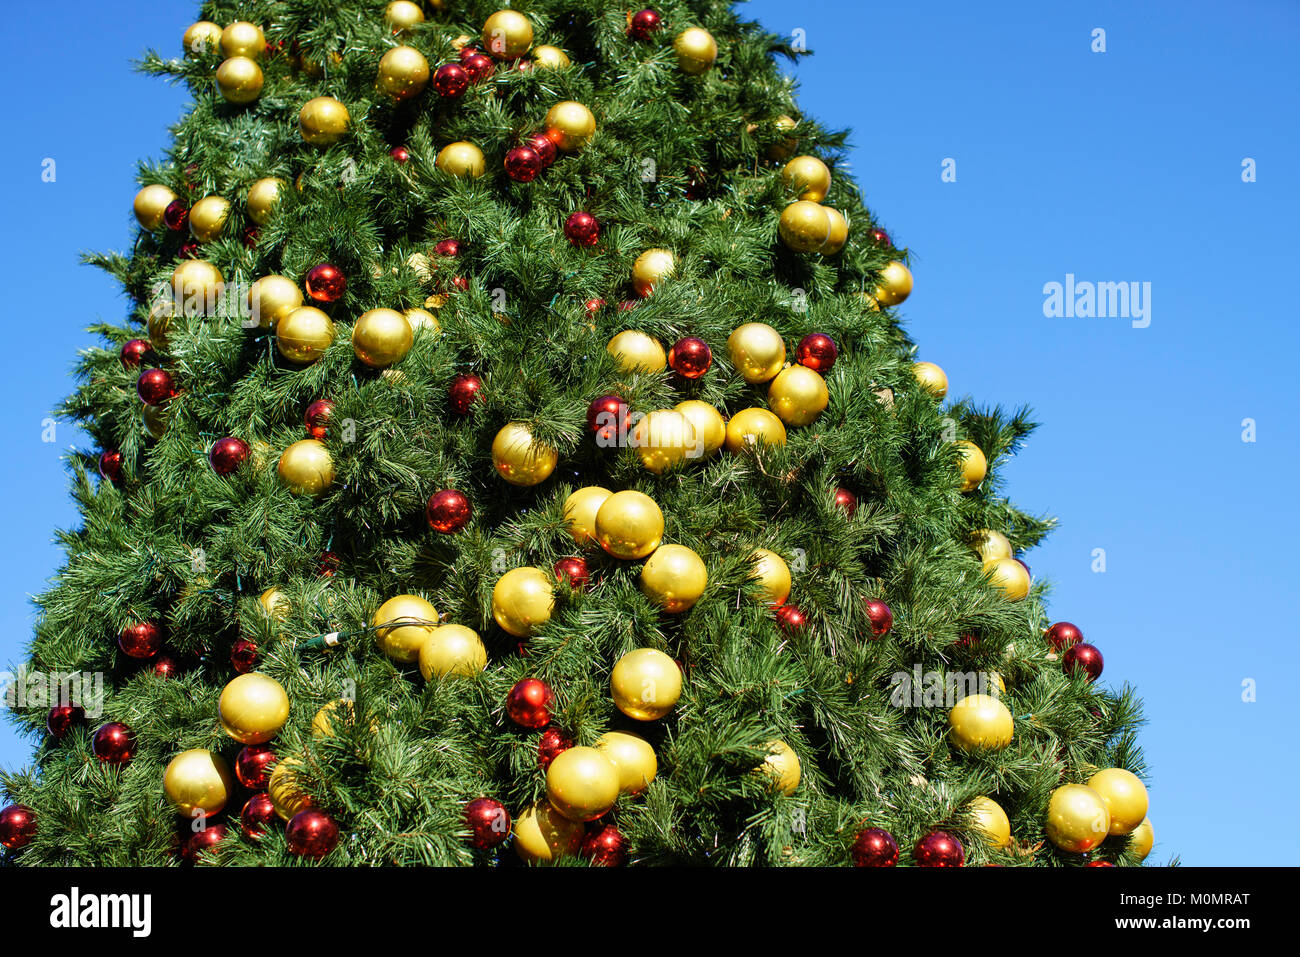 Christmas Tree Outside.Gold And Red Baubles On A Large Christmas Tree Outside On A